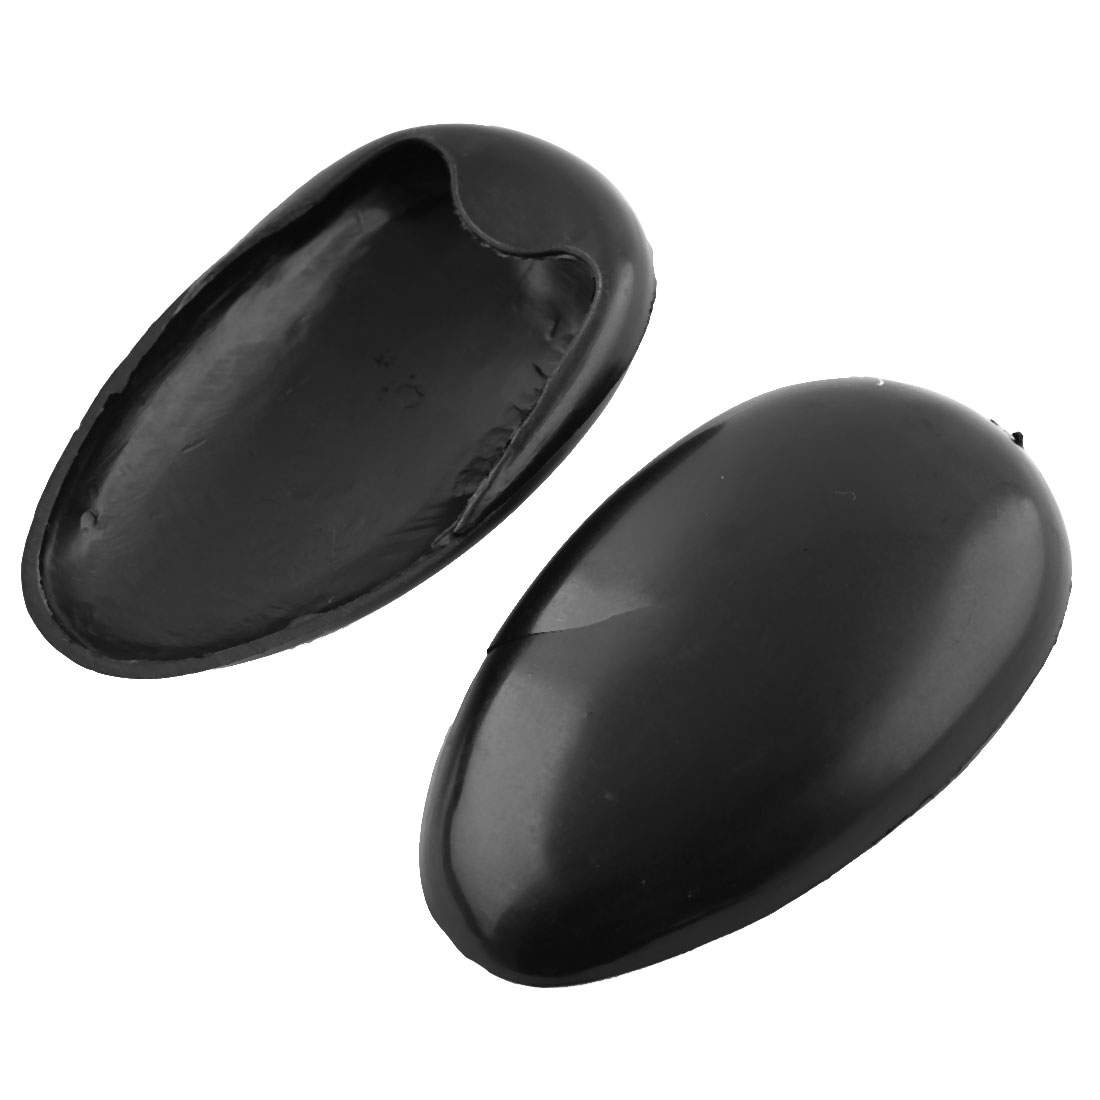 Pair Barber Black Plastic Hair Dye Ear Cover Protector